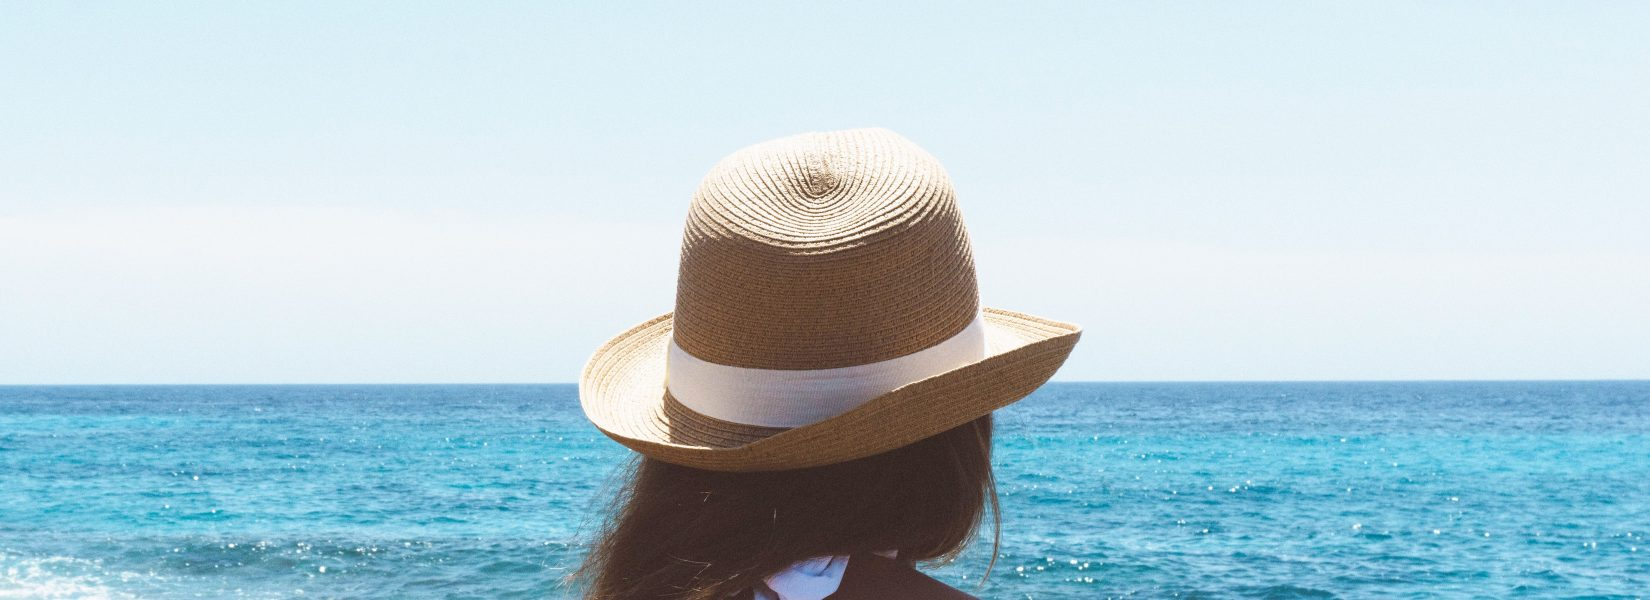 12 Self-Care Tips for Summer